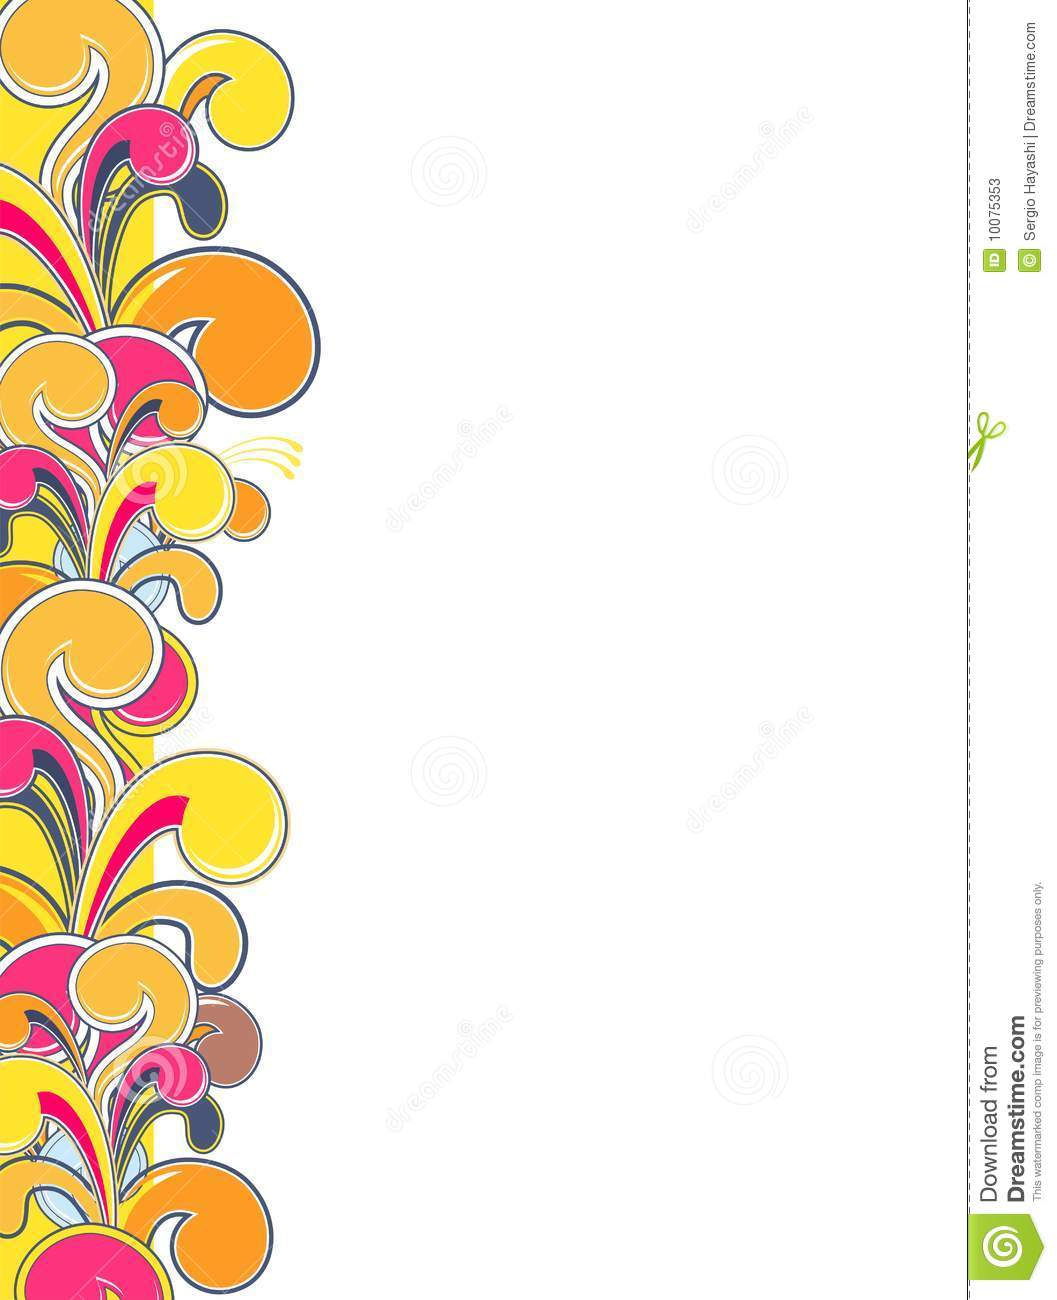 Funky pop border stock vector. Illustration of colorful ...